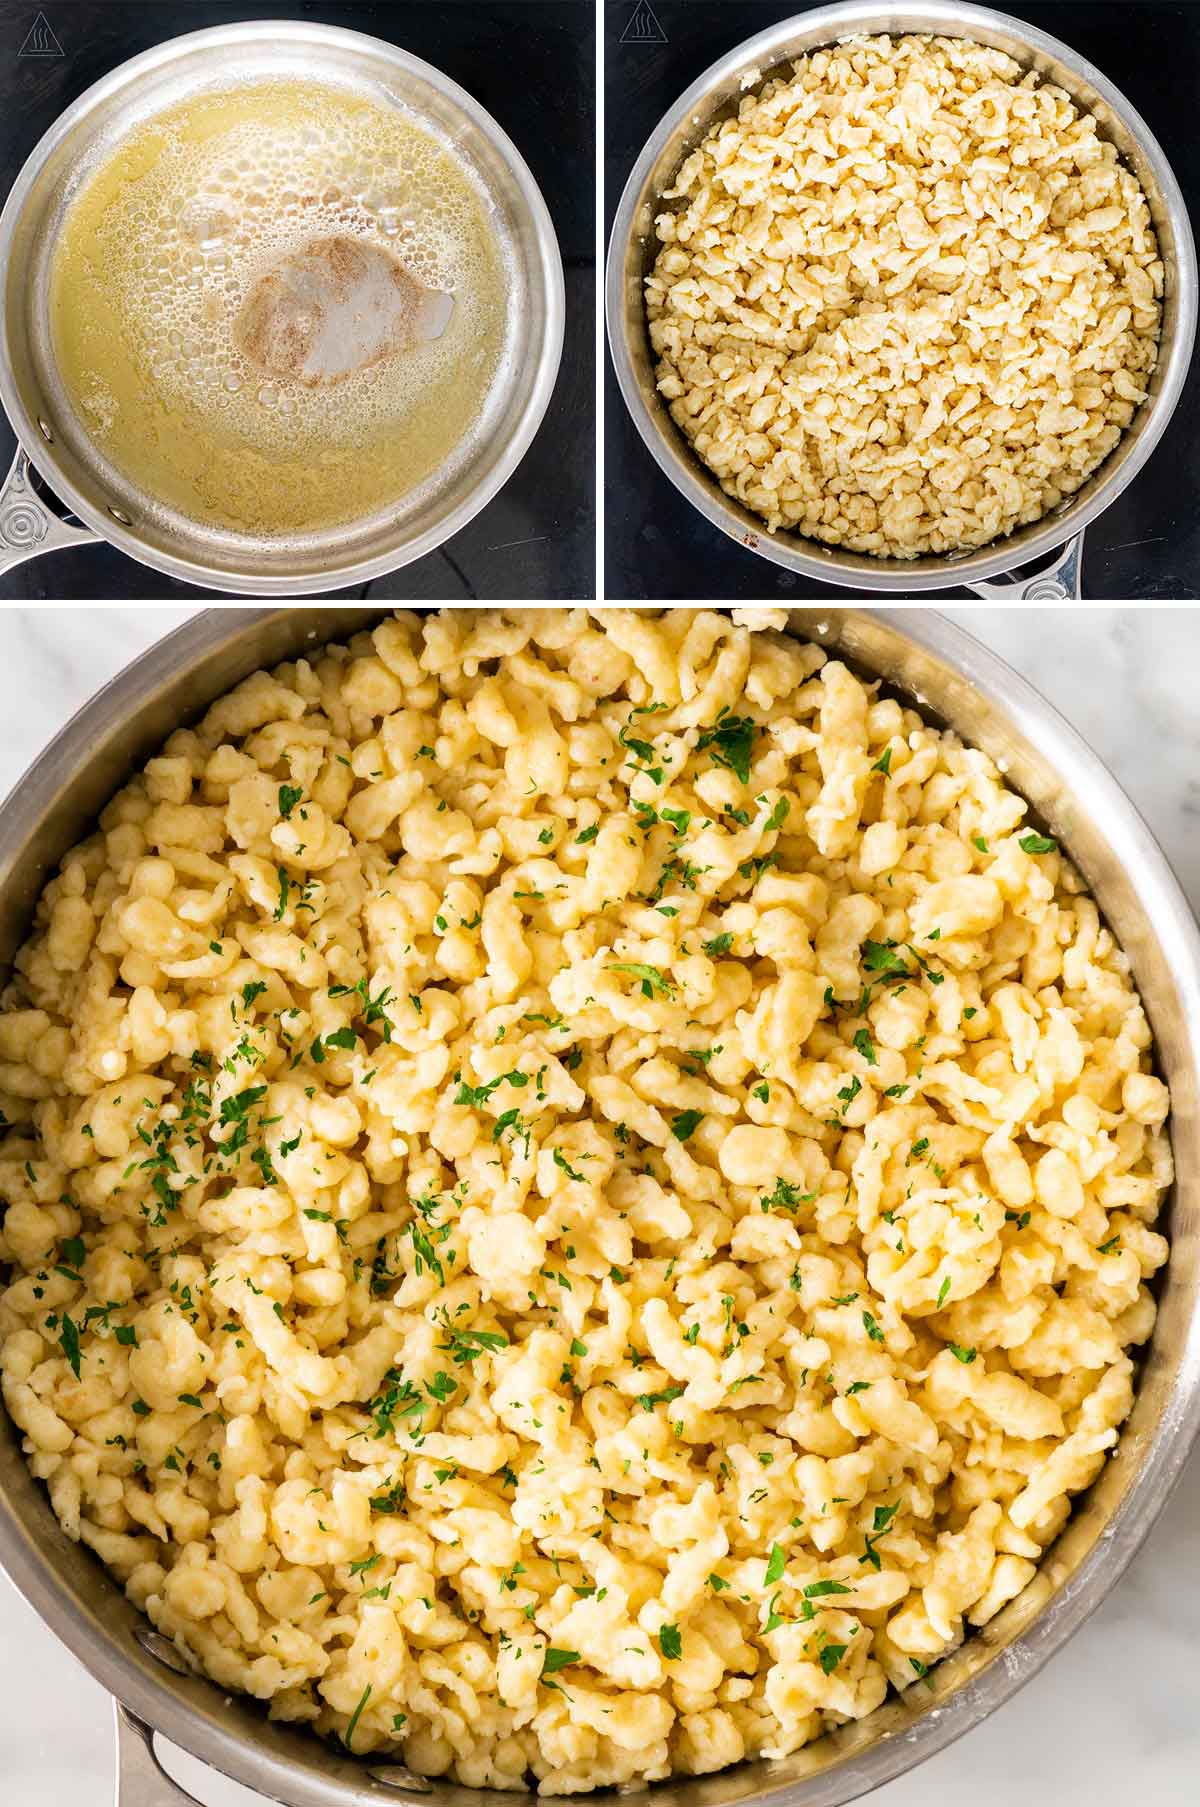 process shots showing how to cook spaetzle in brown butter